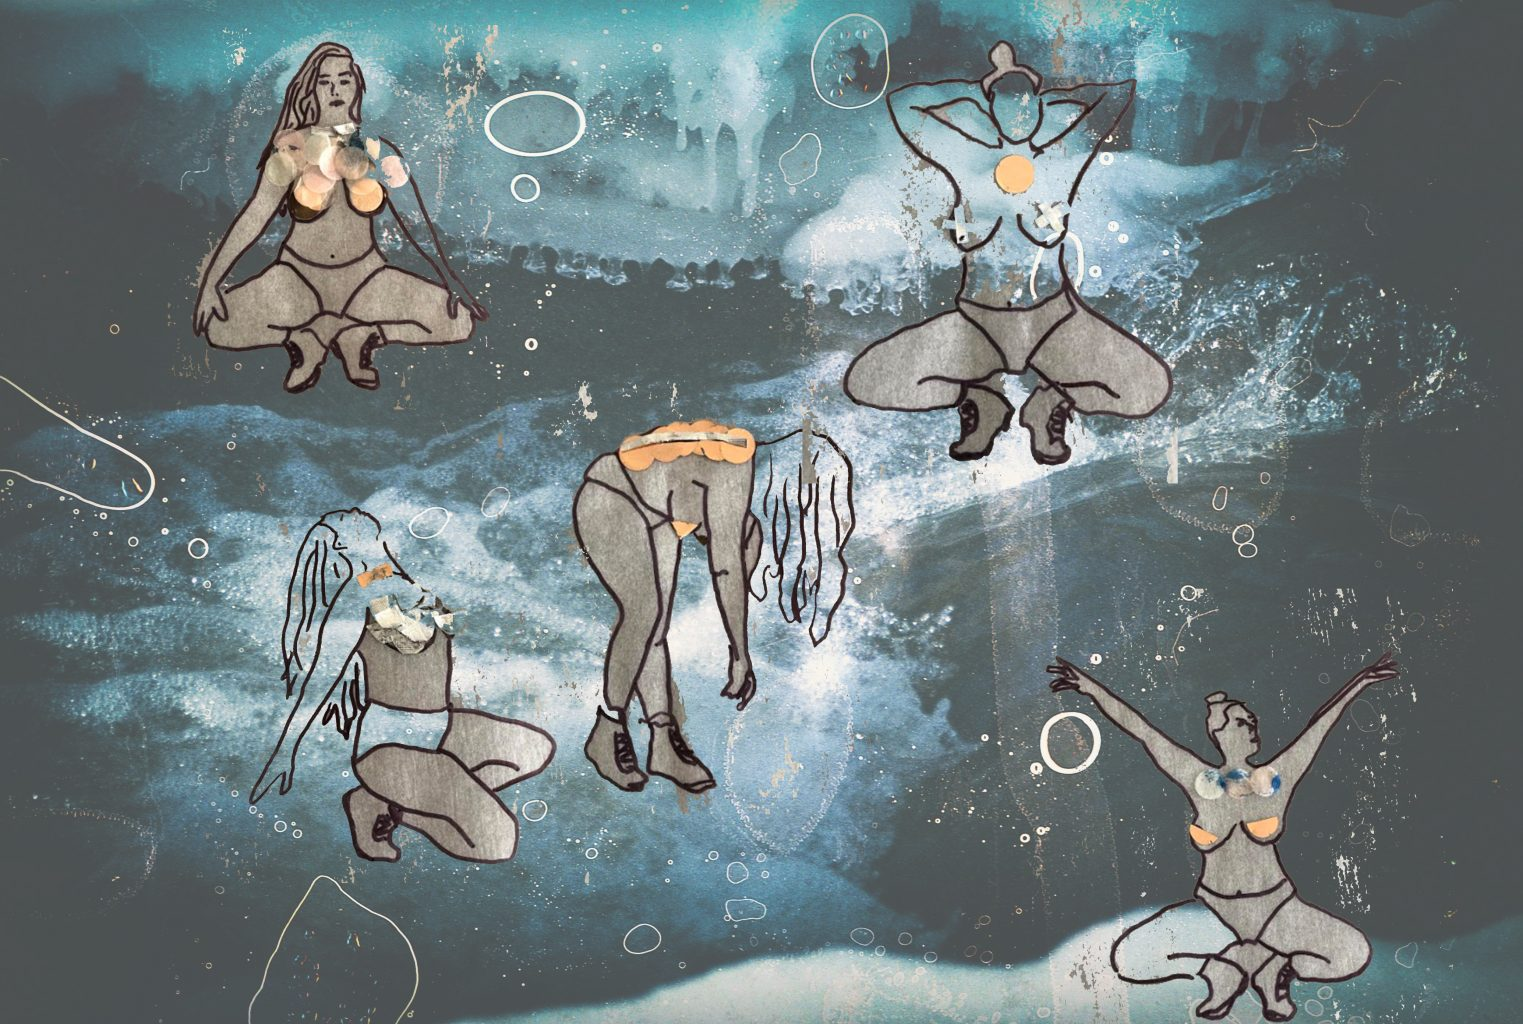 A digital collage by Aria Evans features simple outline drawings of a long haired person in movement, wearing only underwear and shoes. Each iteration of the person is posed differently (crouching, kneeling, bending) and has collaged materials on top of varying parts of the body. These bodies are set against a lightly faded background image of ice and rushing water, overlaid with illustrated speckles and bubbles.